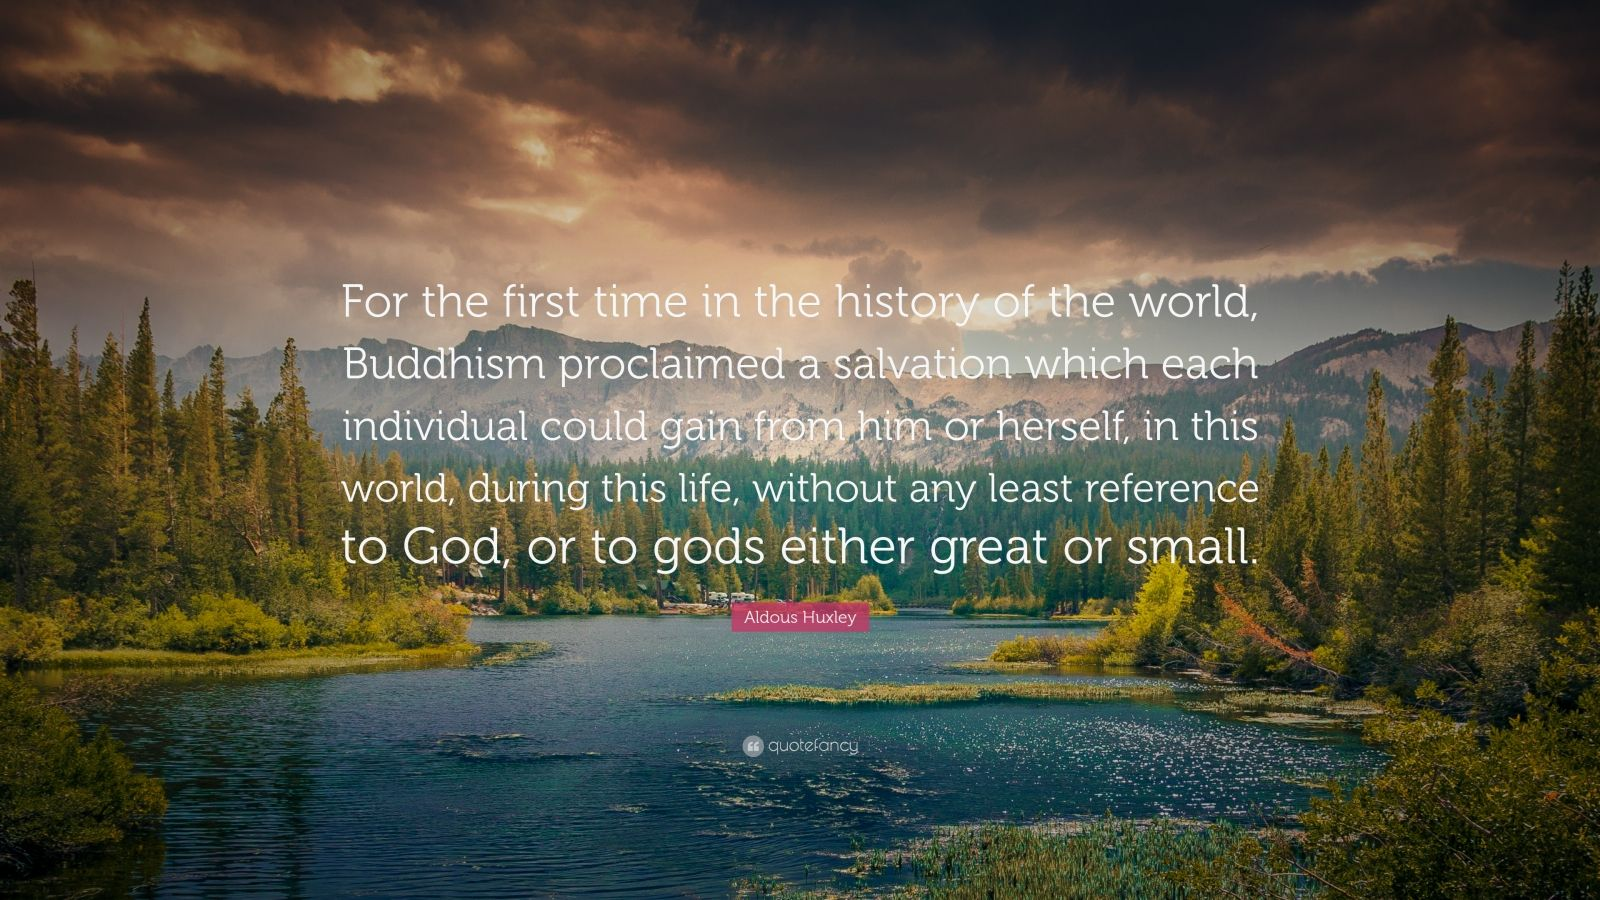 """Aldous Huxley Quote: """"For the first time in the history of the world, Buddhism proclaimed a salvation which each individual could gain from him or herself, in this world, during this life, without any least reference to God, or to gods either great or small."""""""